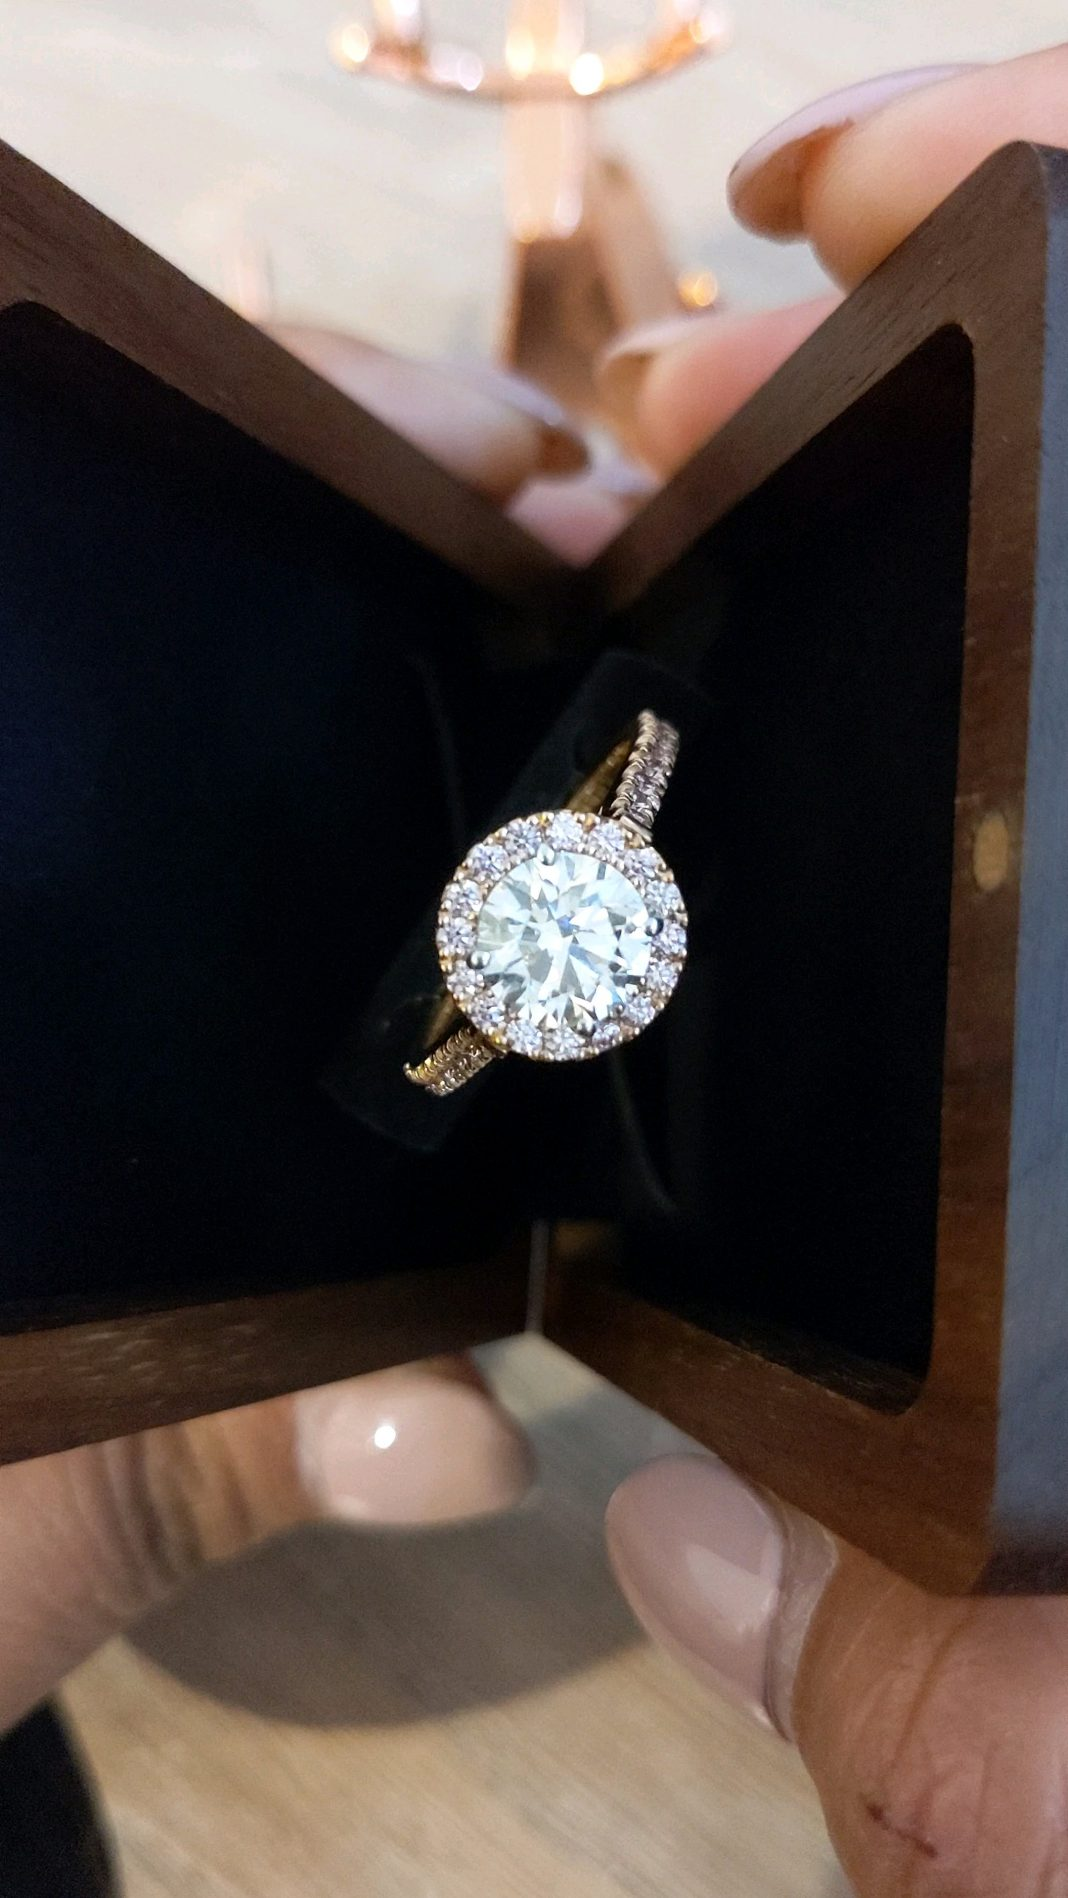 Won't have my ring for up to 2 weeks while they make my wedding band. It's been 24 hours and just looking at my library to help with the crazy lol